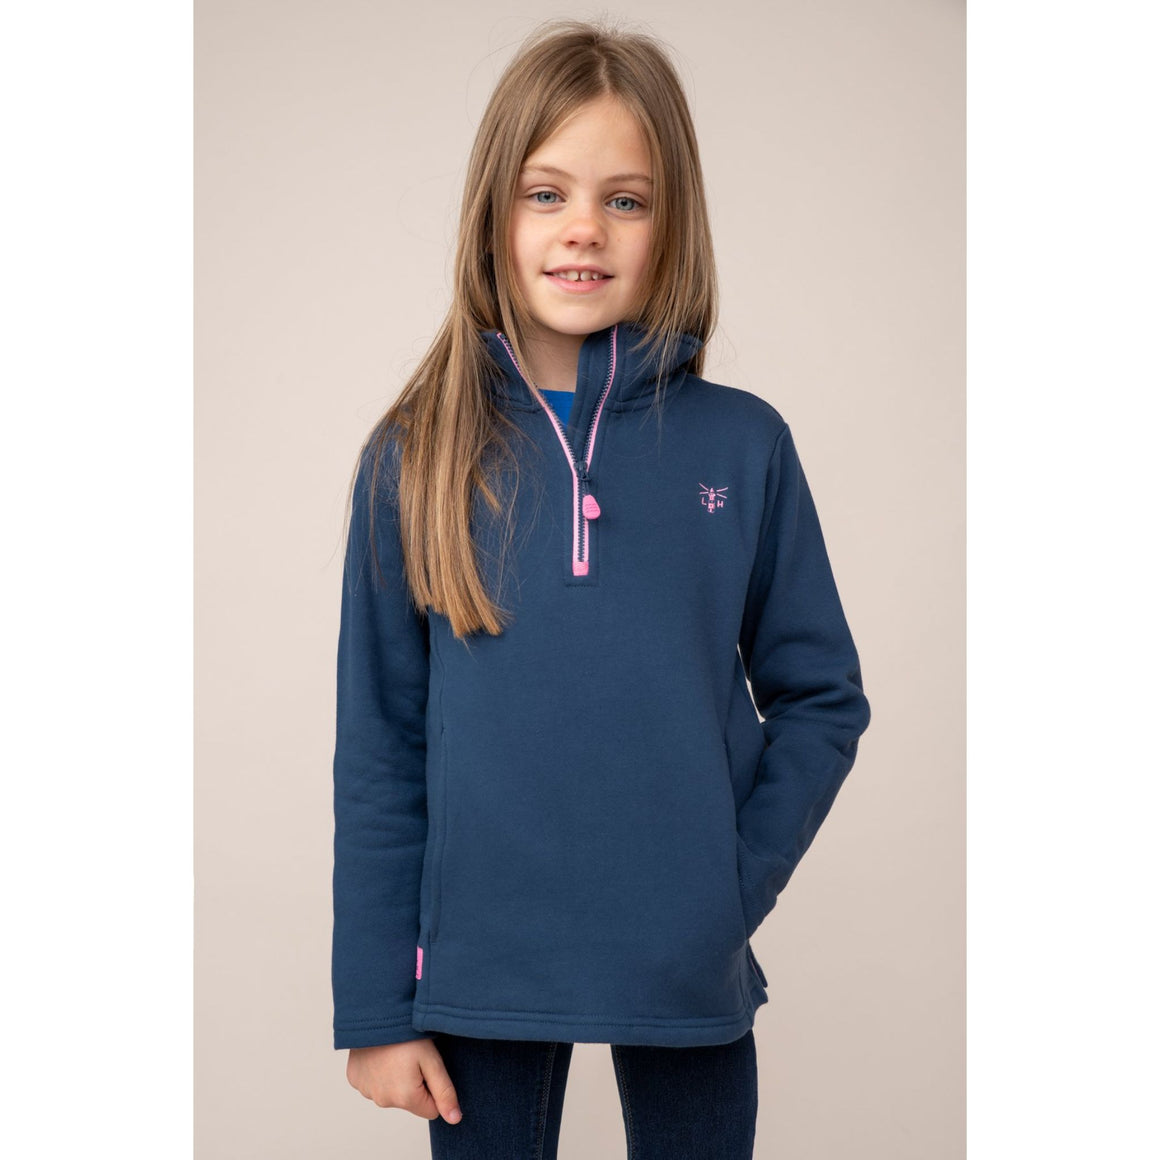 Robyn Girls Sweater Top Navy